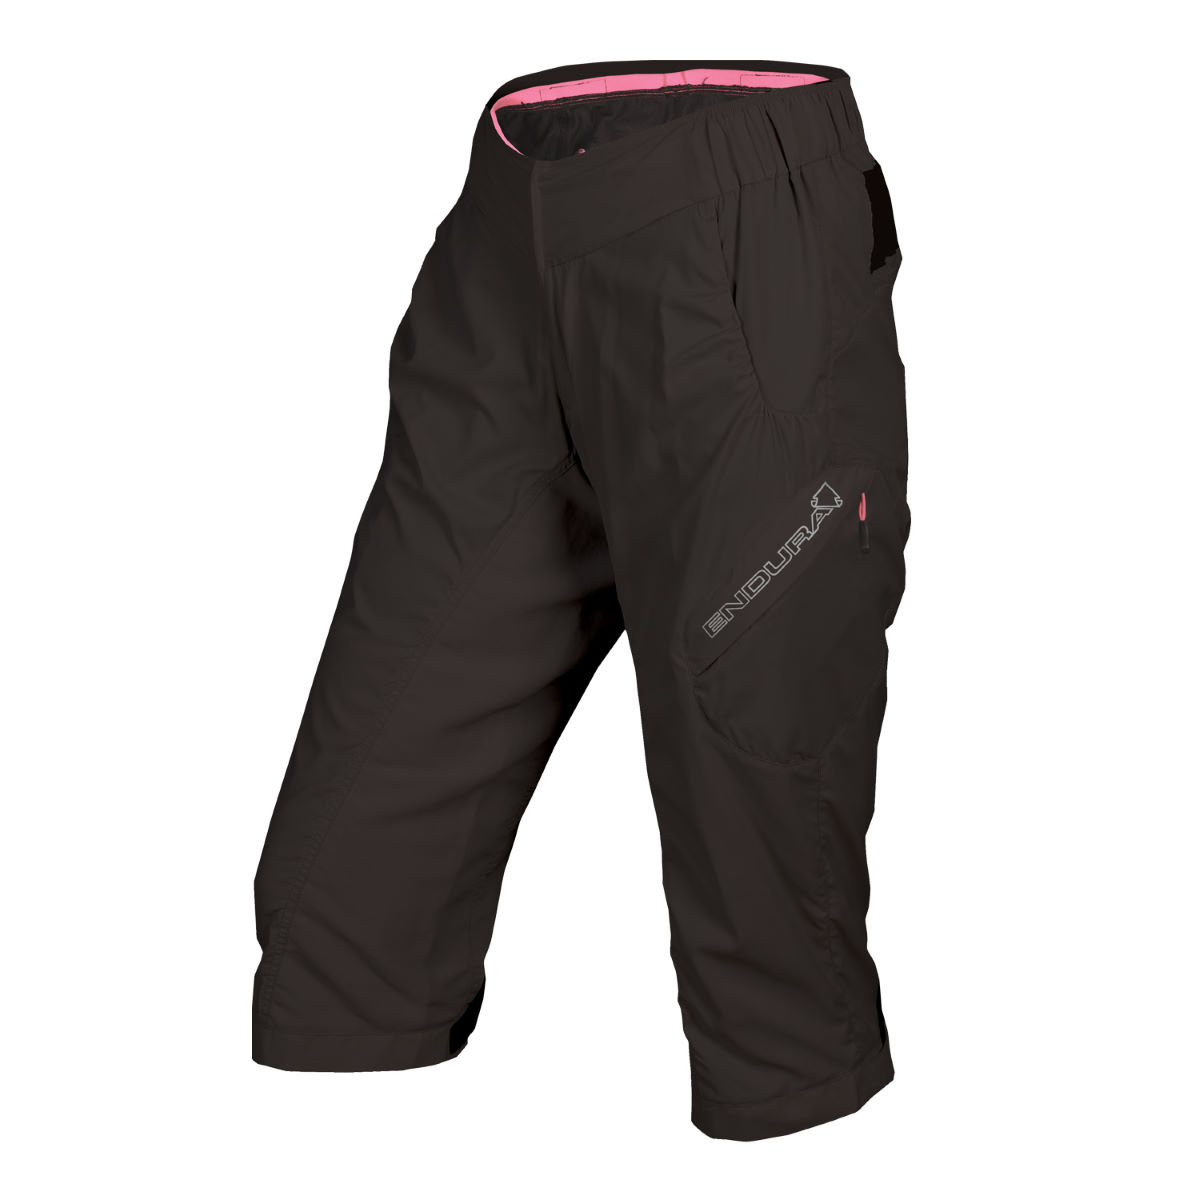 Short 3/4 Femme Endura Hummvee Lite - Medium Noir Shorts VTT